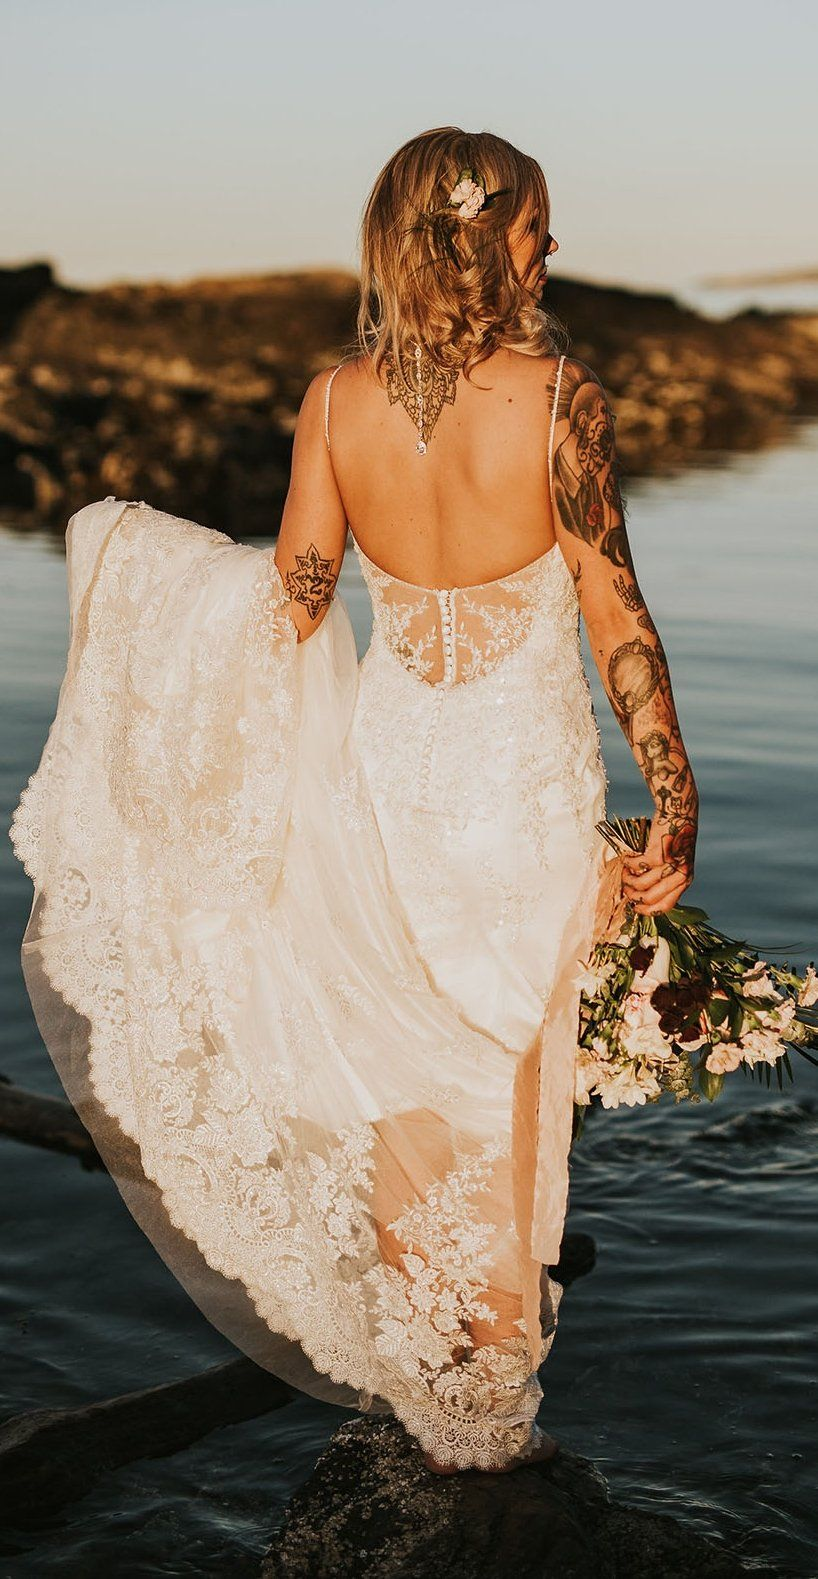 reasons we adore fall weddings featuring maggie sottero designs